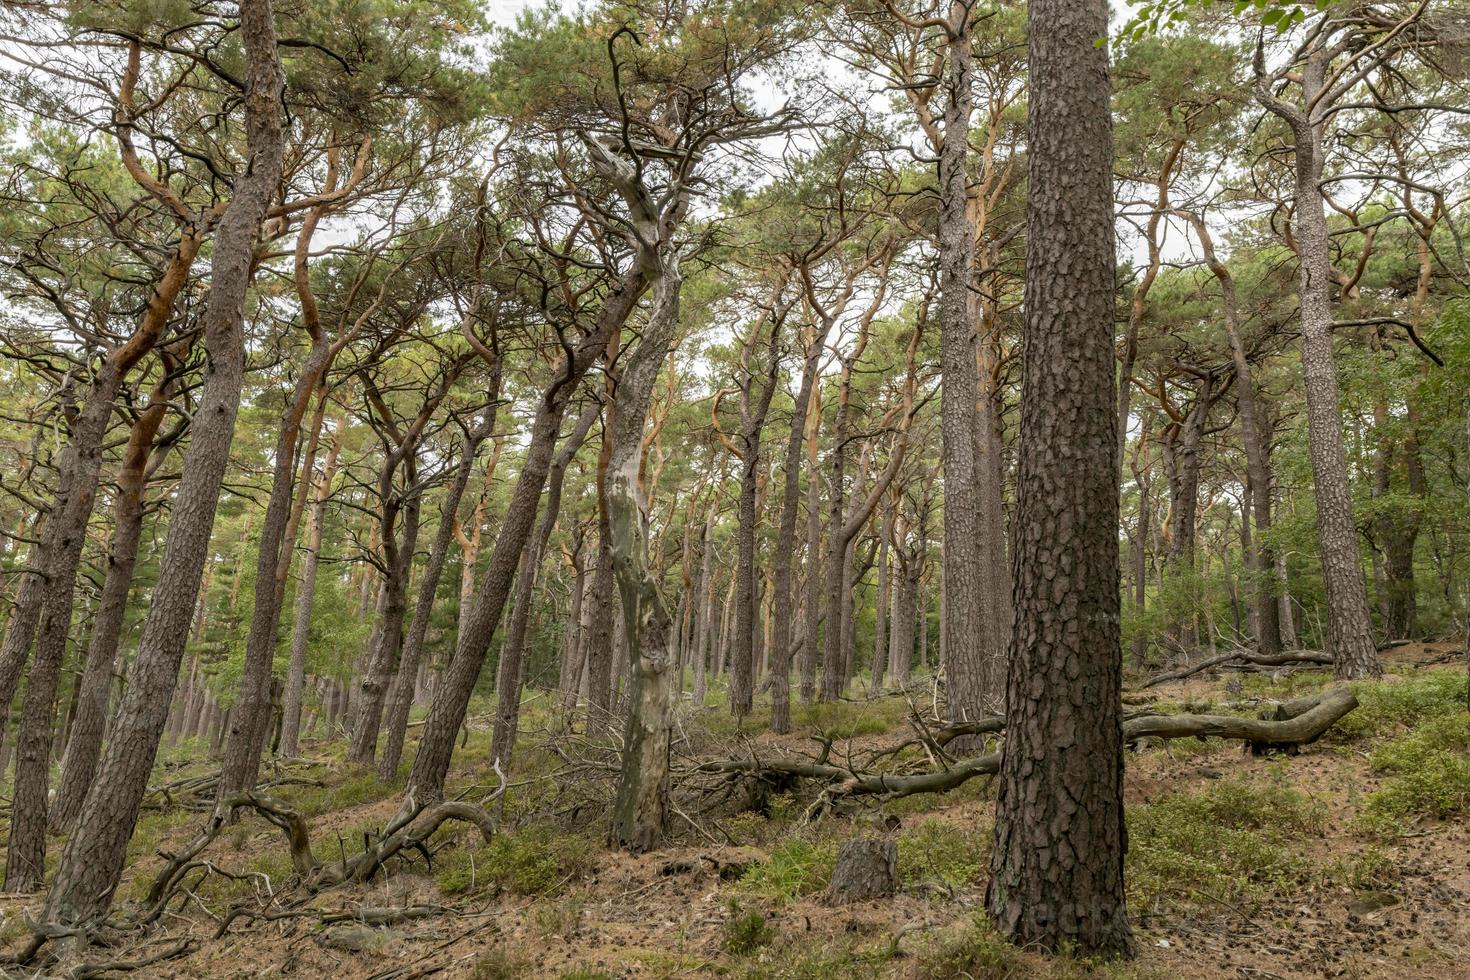 View over a wooded valley with pines and deciduous trees photo